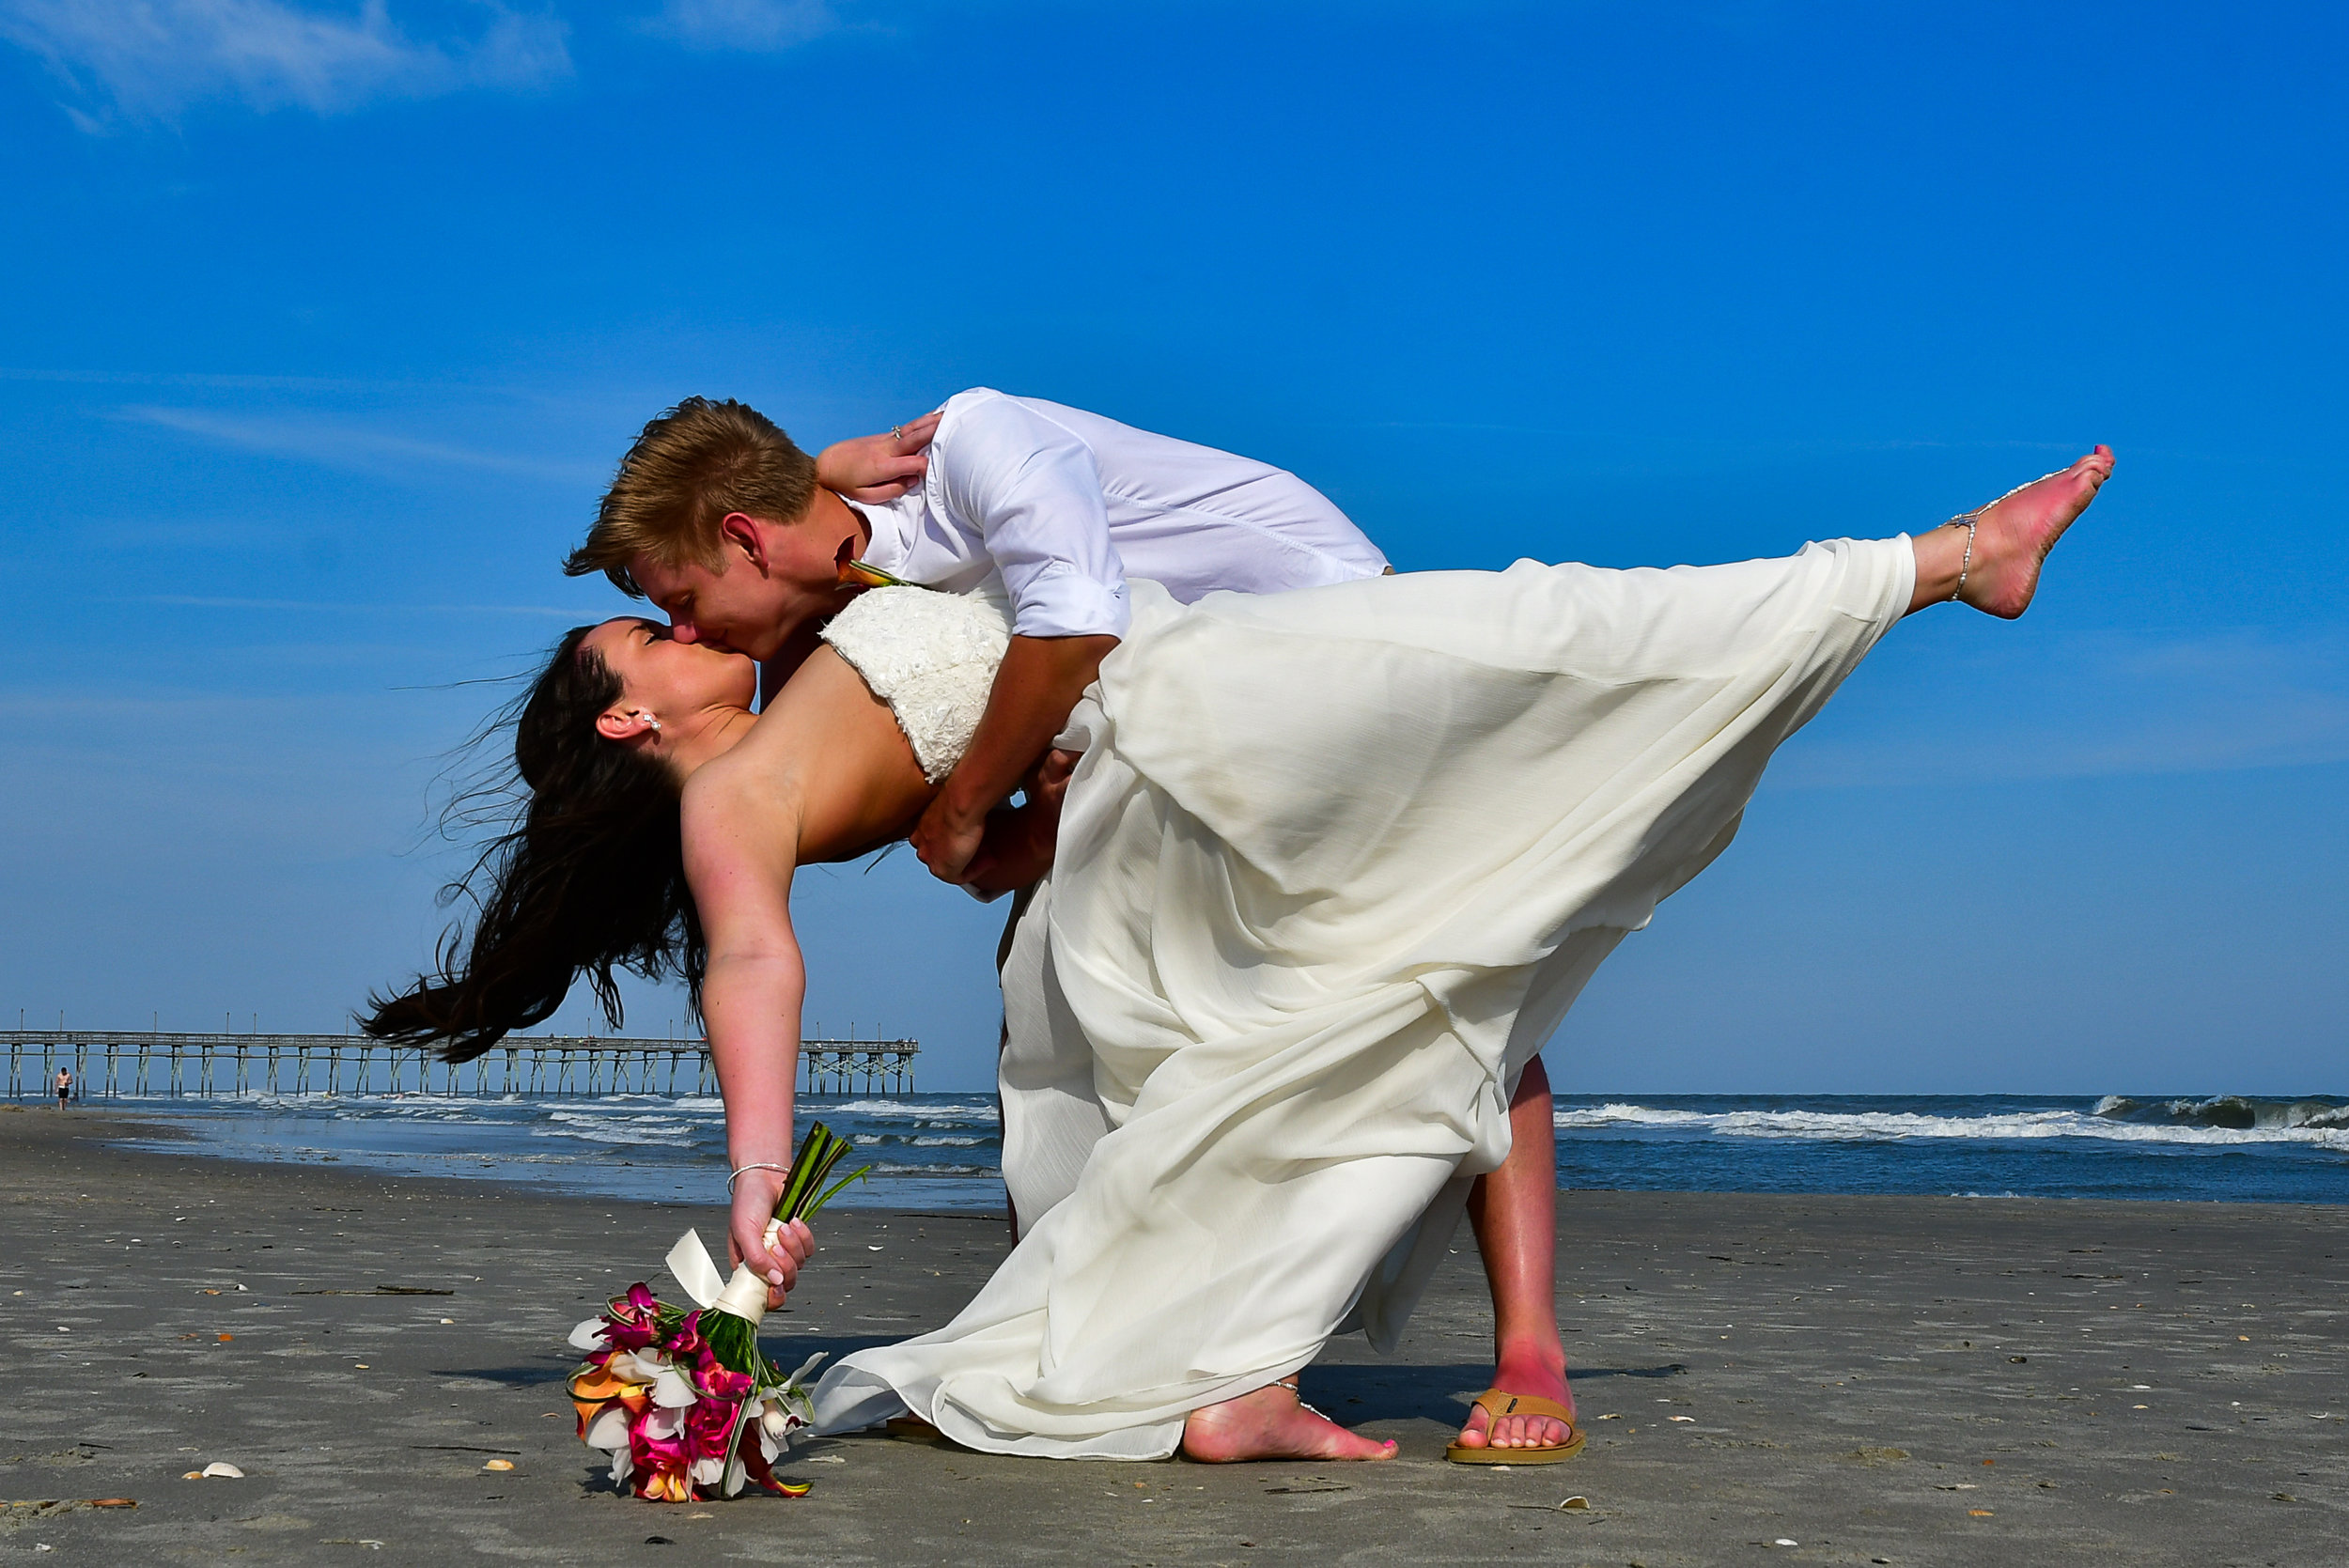 - Classic pose of groom dipping bride on the beach at waters edge with pier in the background.